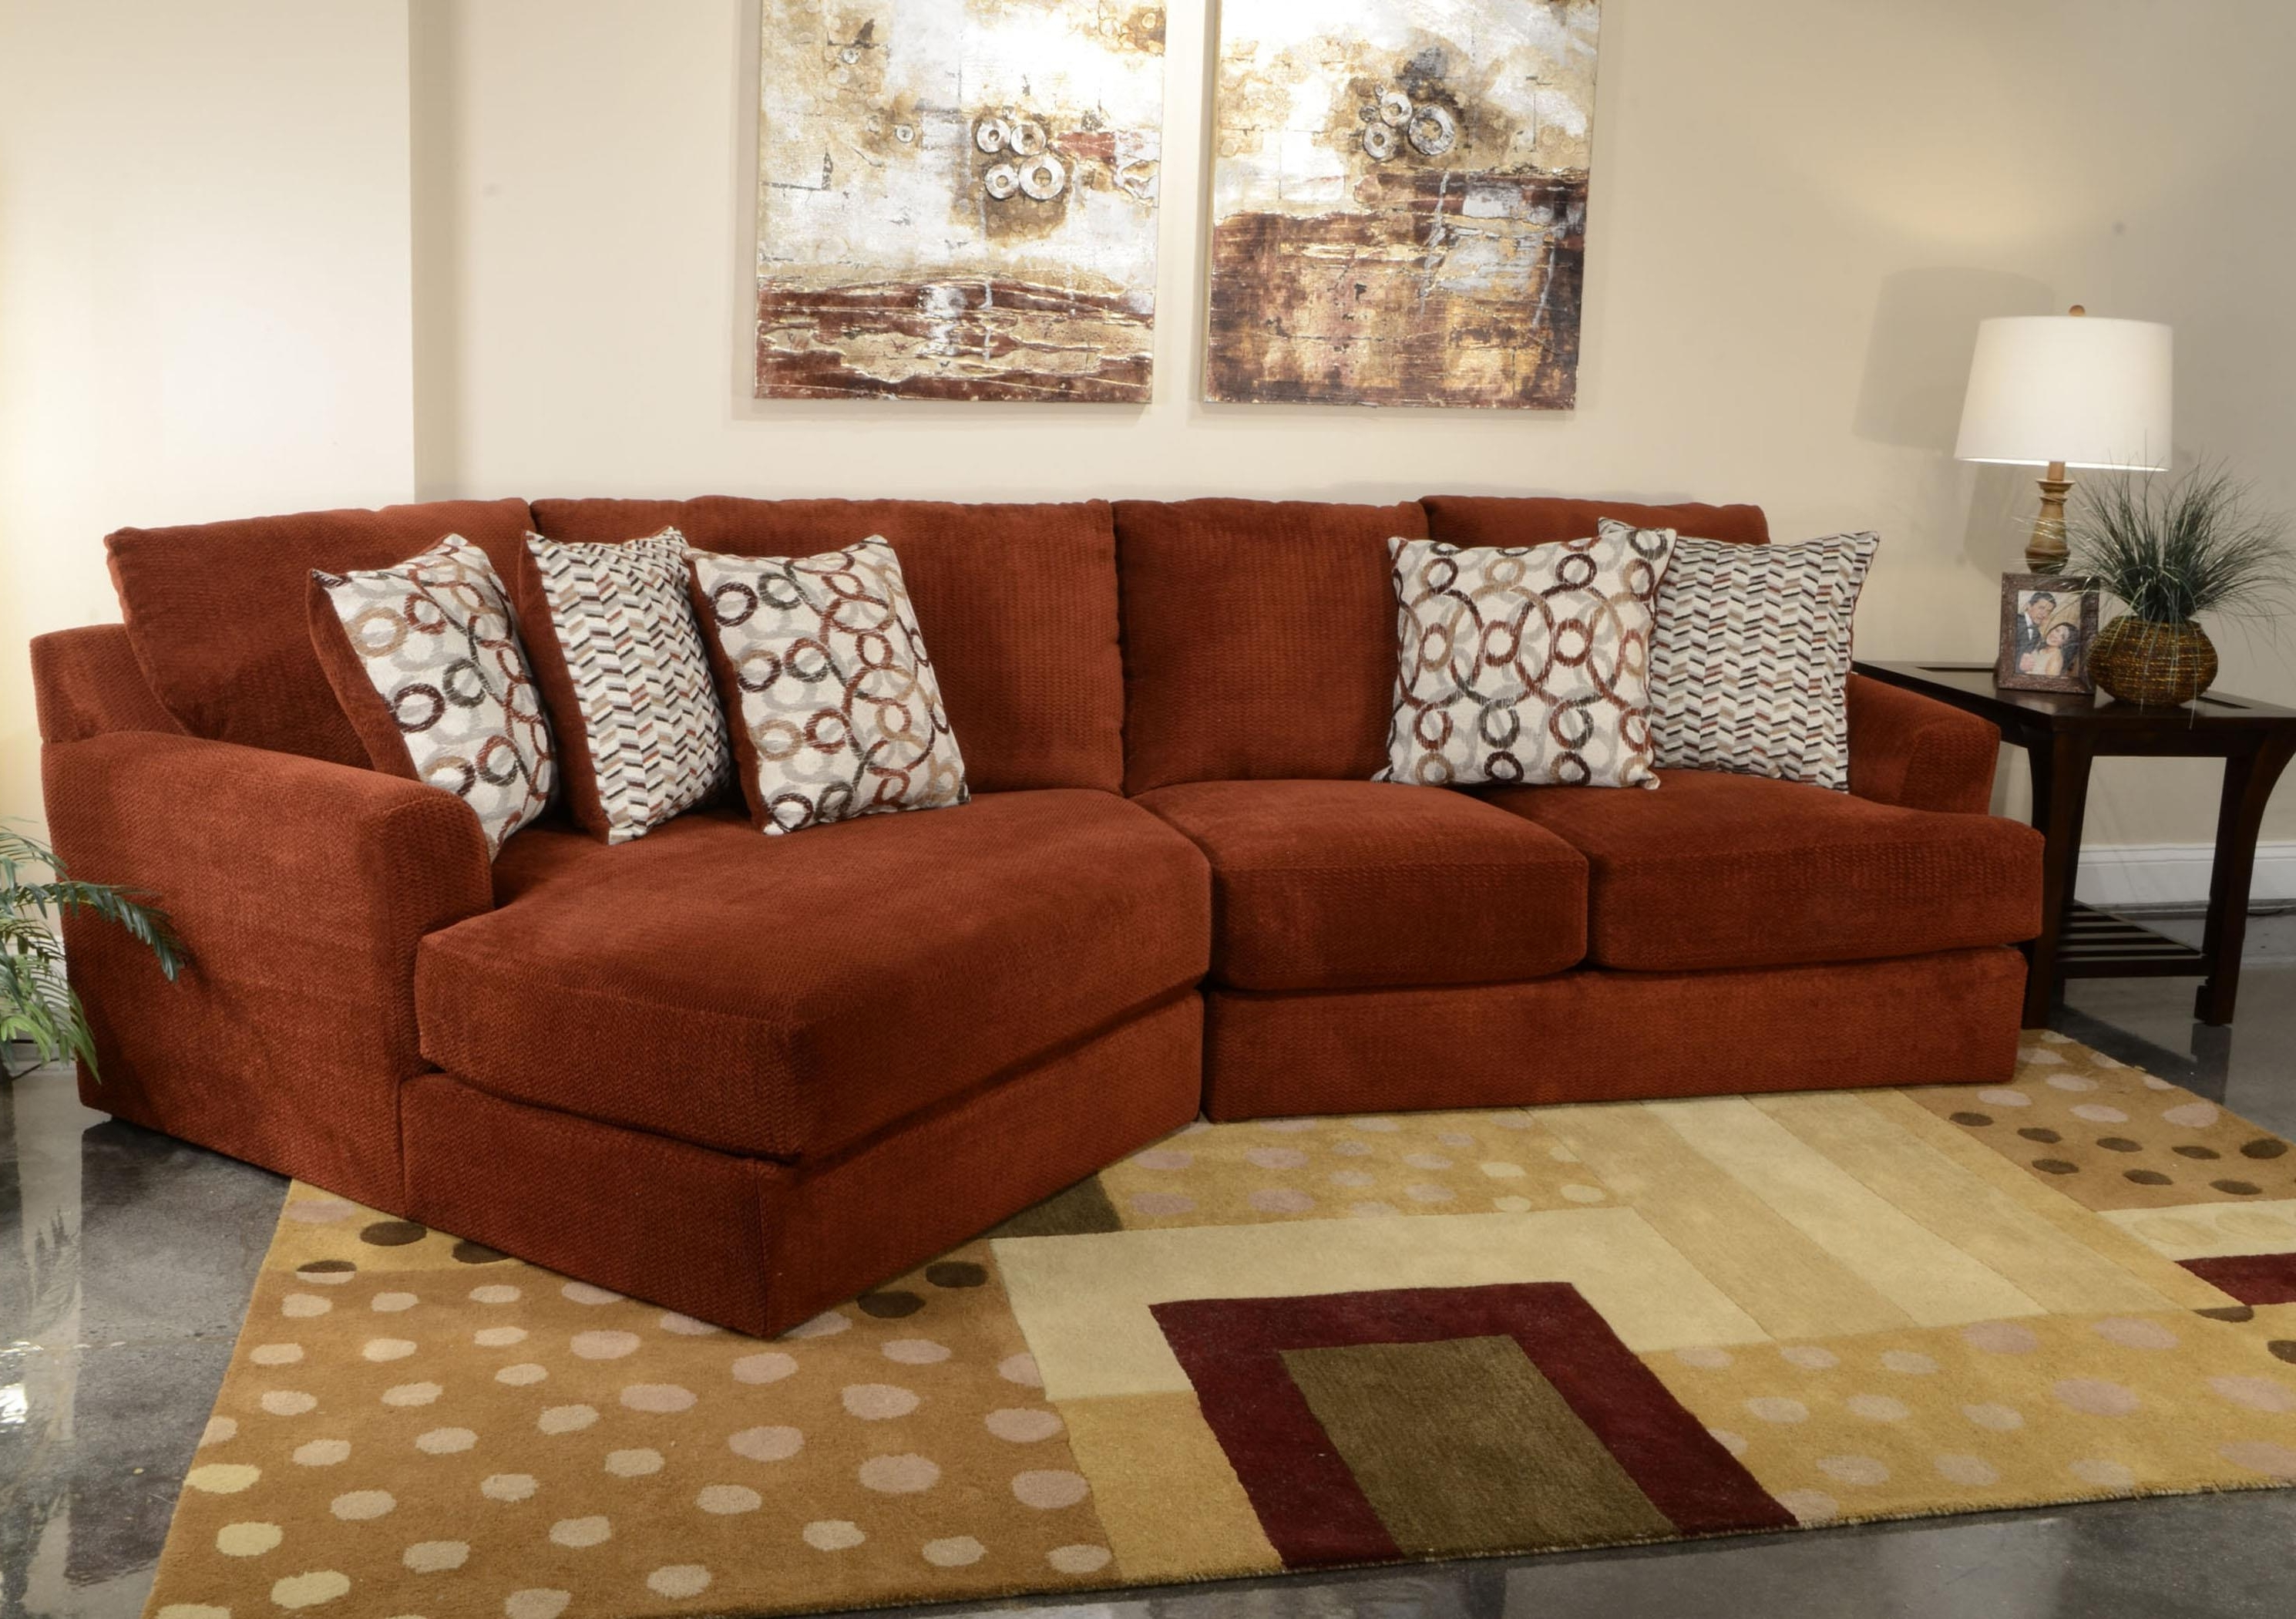 Small Three Seat Sectional Sofajackson Furniture (View 6 of 20)